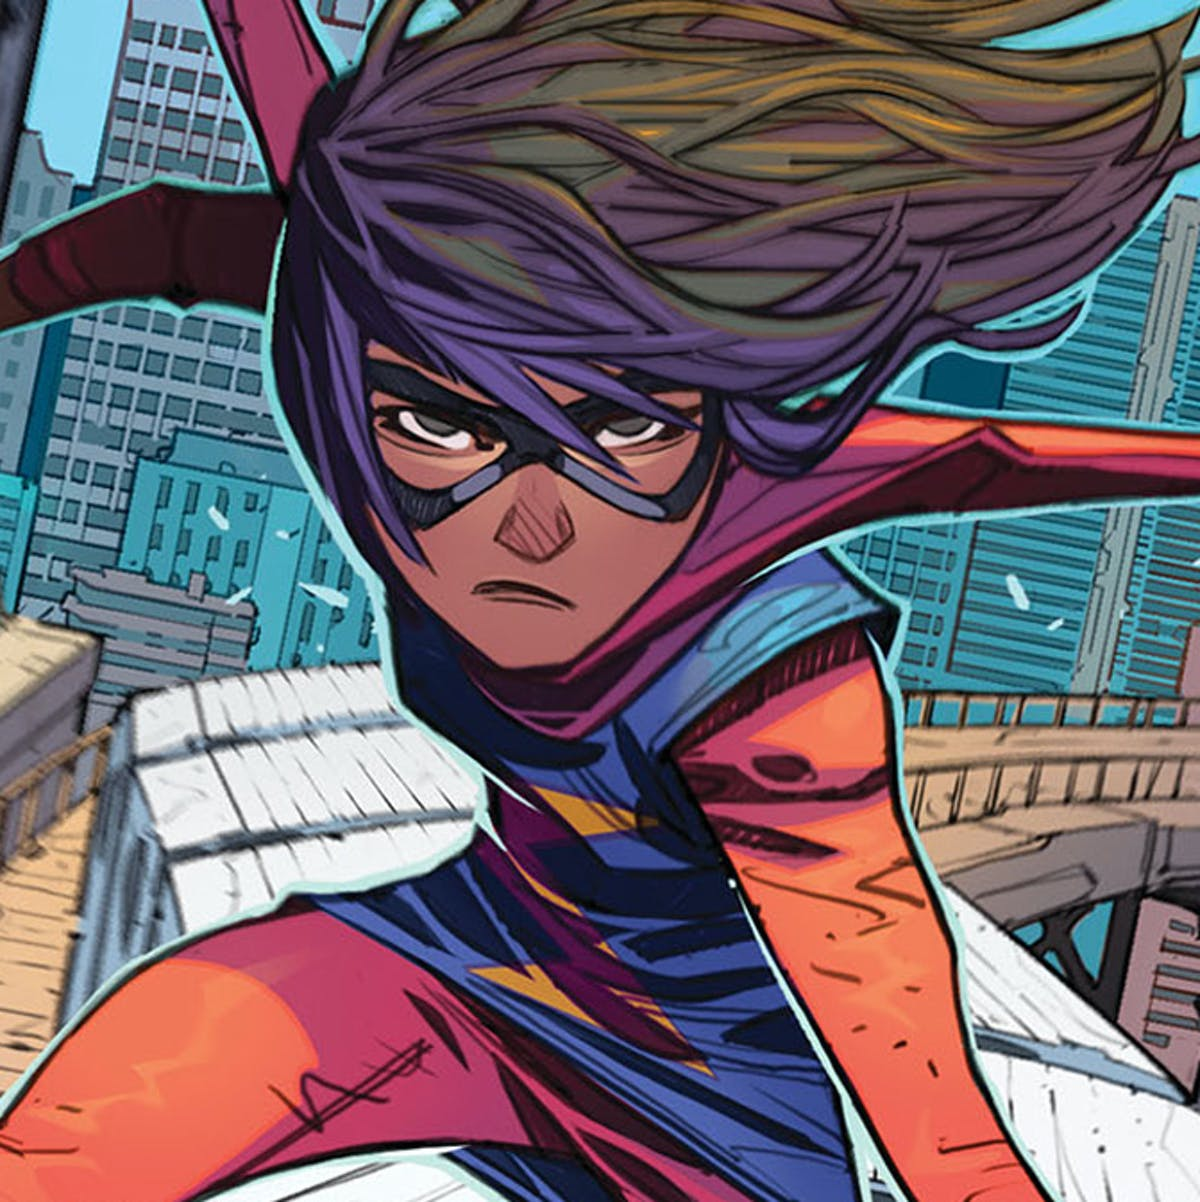 'Marvel's Avengers' game: Why Kamala Khan is the perfect main character